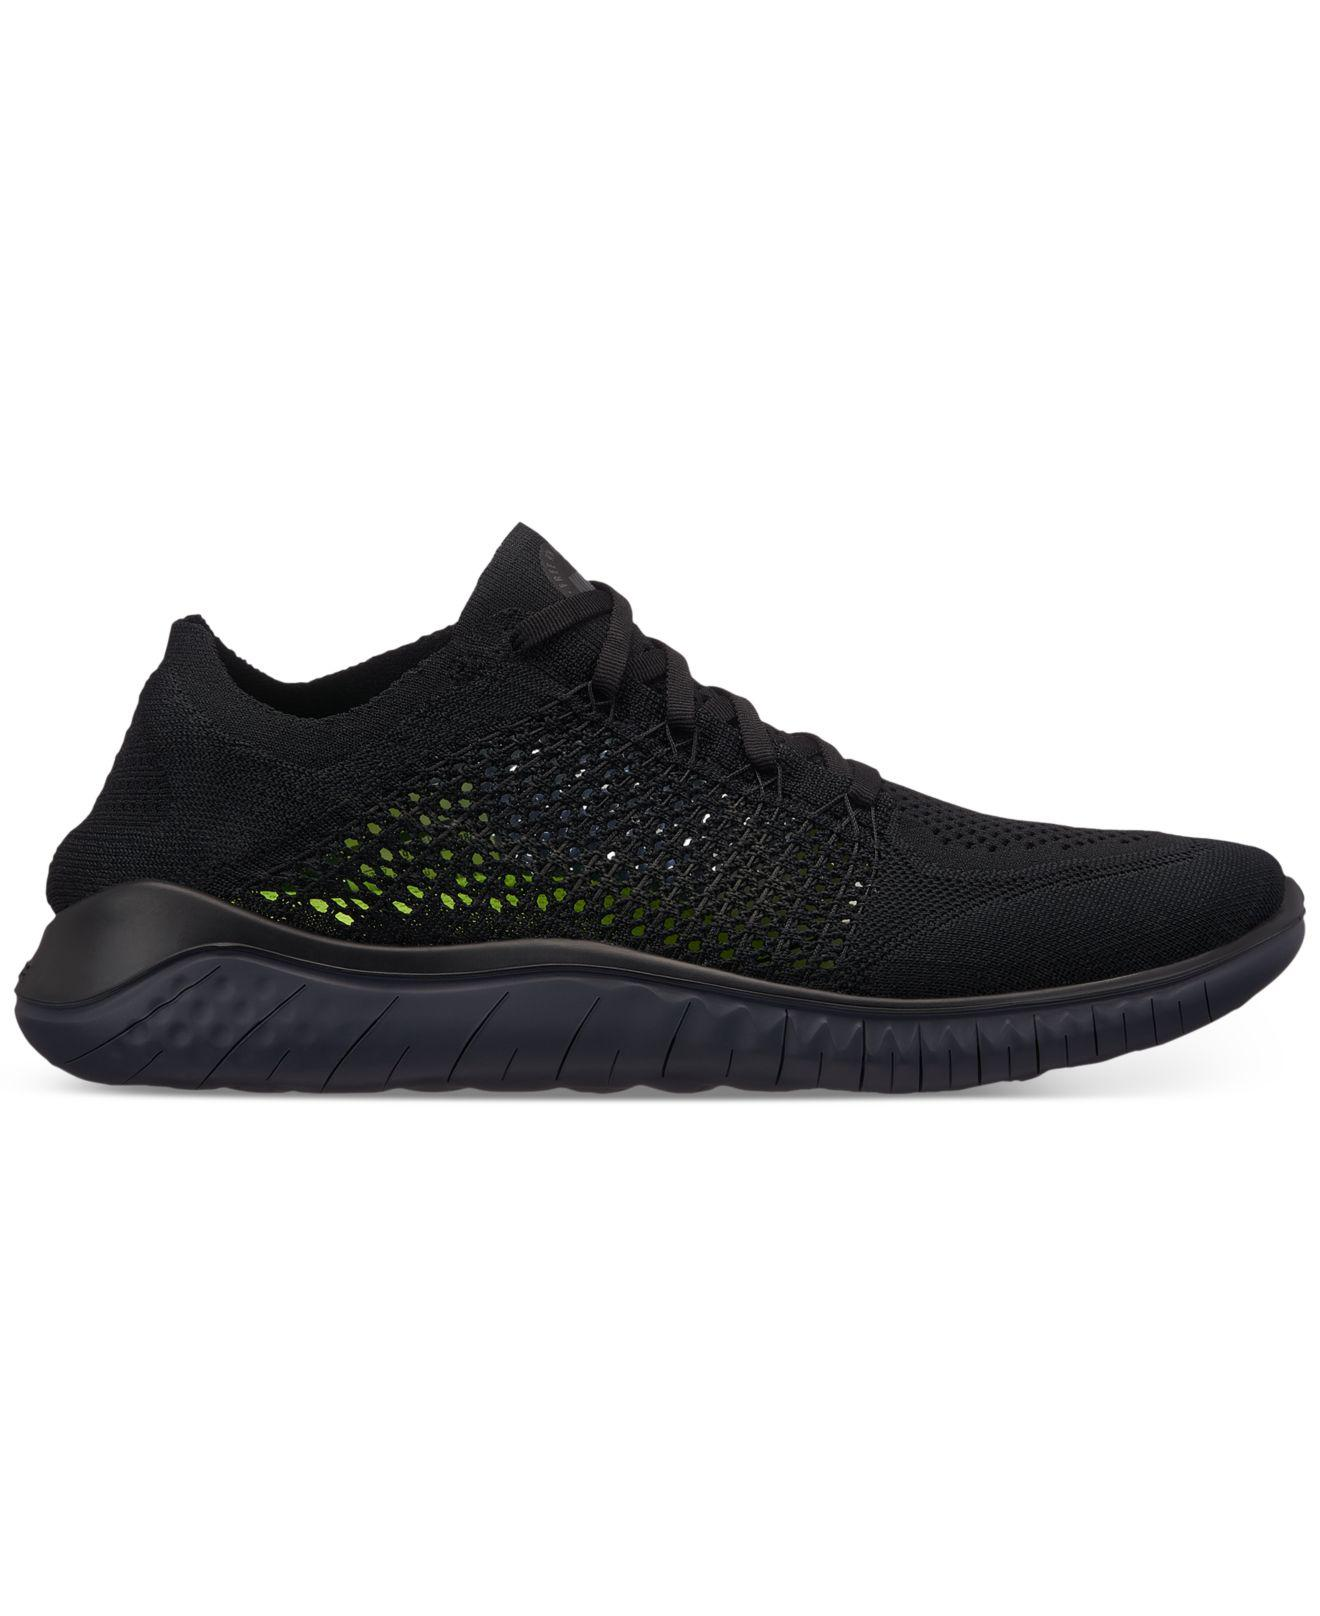 Nike. Men s Black Free Run Flyknit 2018 Running Sneakers From Finish Line f44089c2a